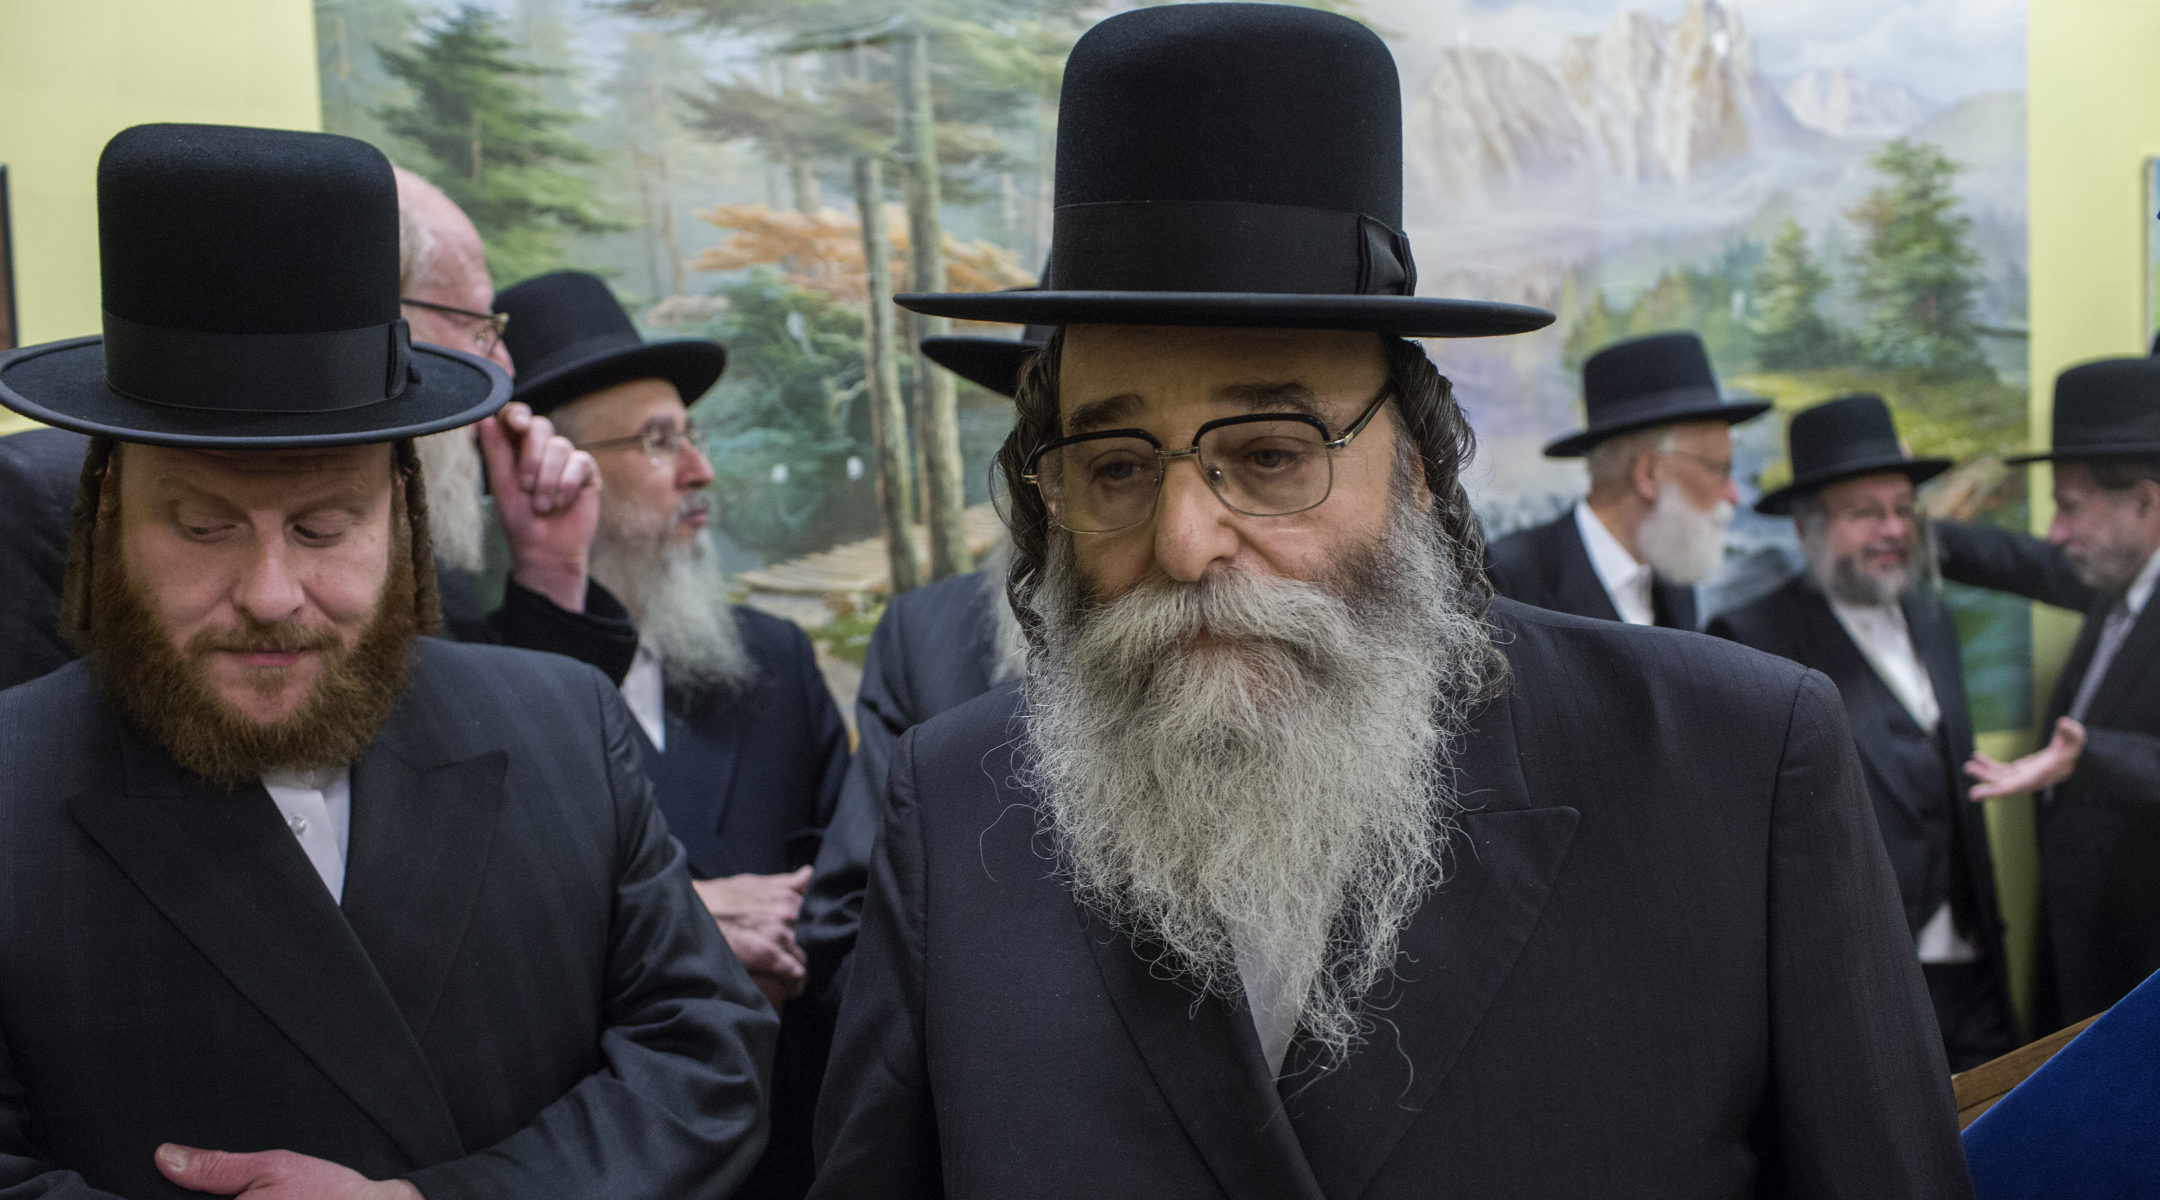 Couple arrested in Brooklyn for accusing Chassidim of spreading coronavirus